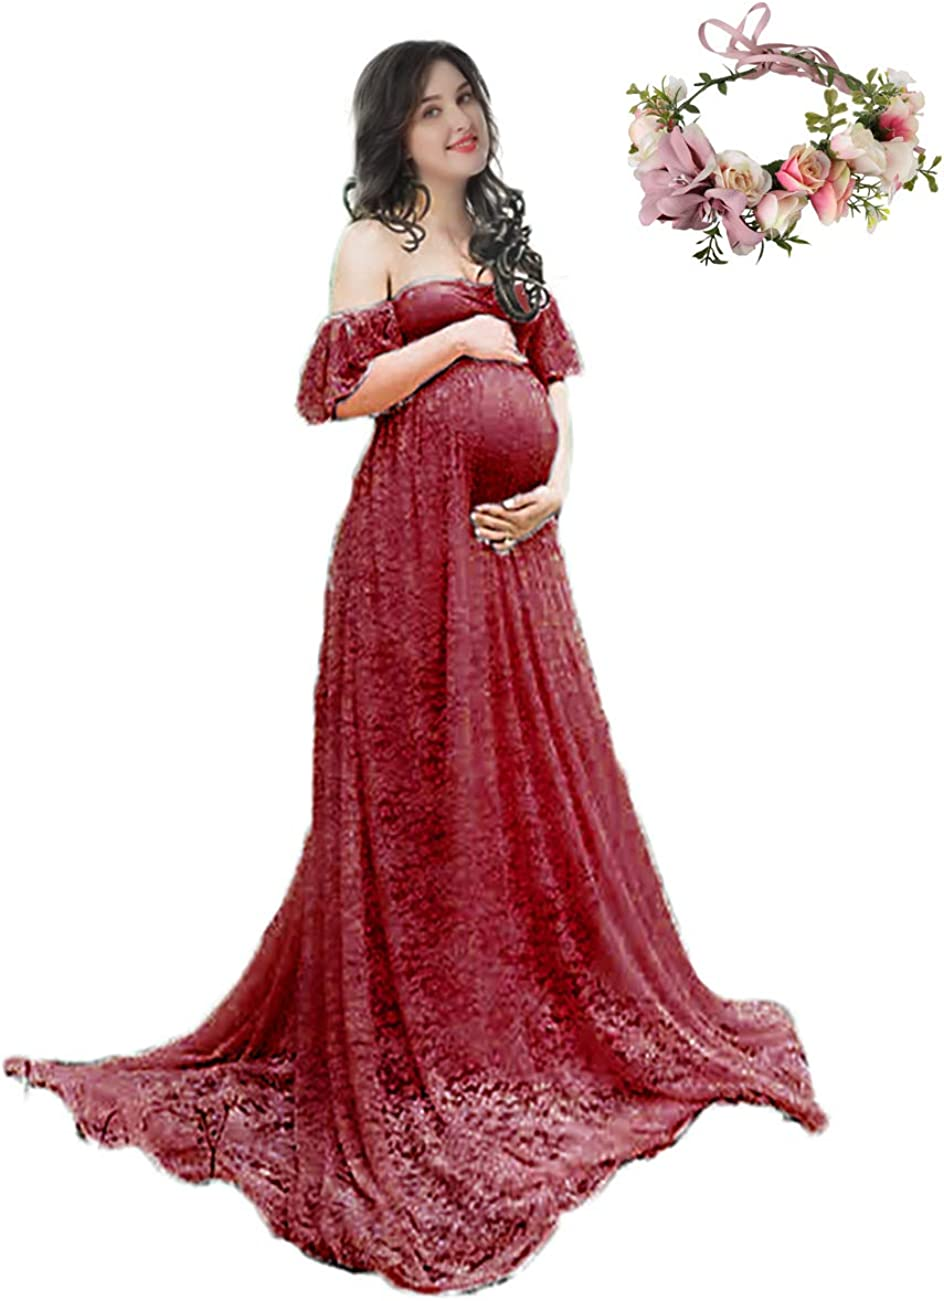 Women Yofeel Womens Off Shoulder Ruffle Sleeve Lace Maternity Gown Plus Maxi Photography Dress Clothing Accessories Postindustrial Com